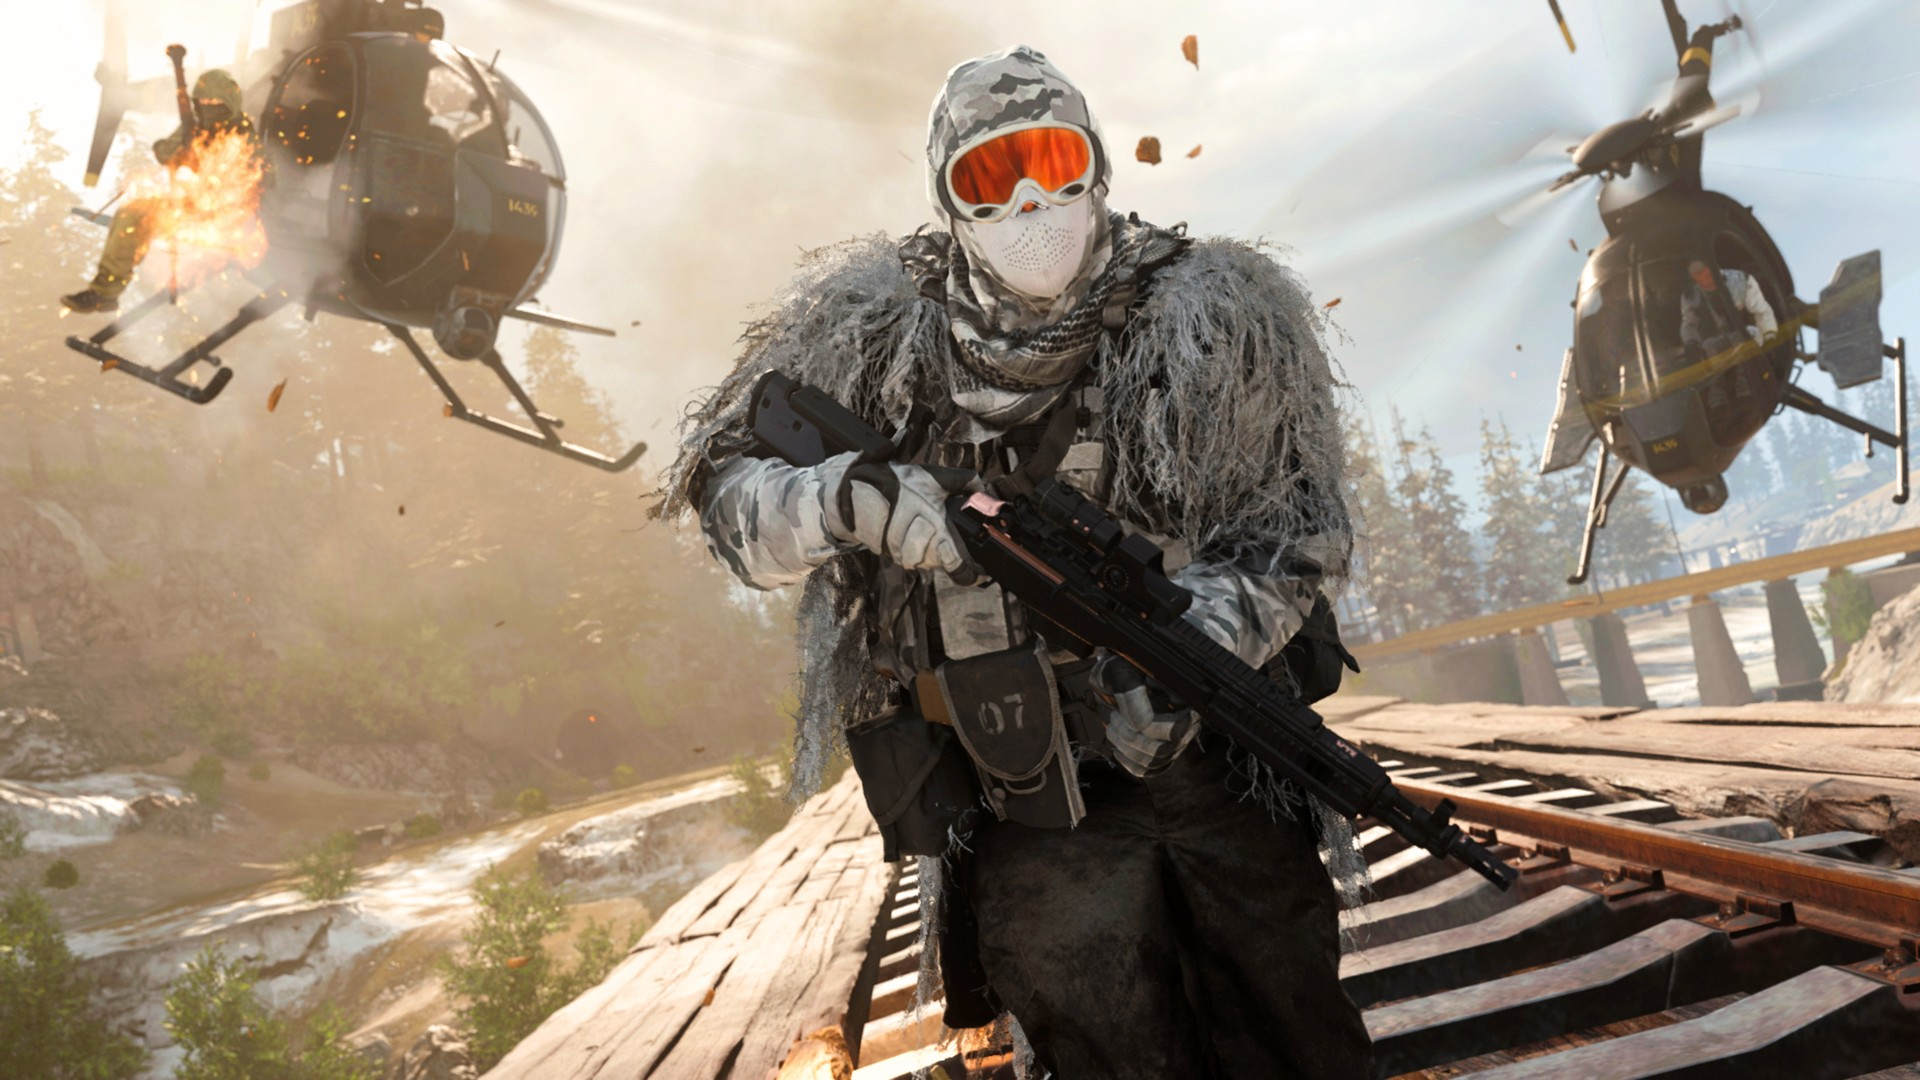 Call of Duty: Warzone can't be confused with Warzone.com, says Activision